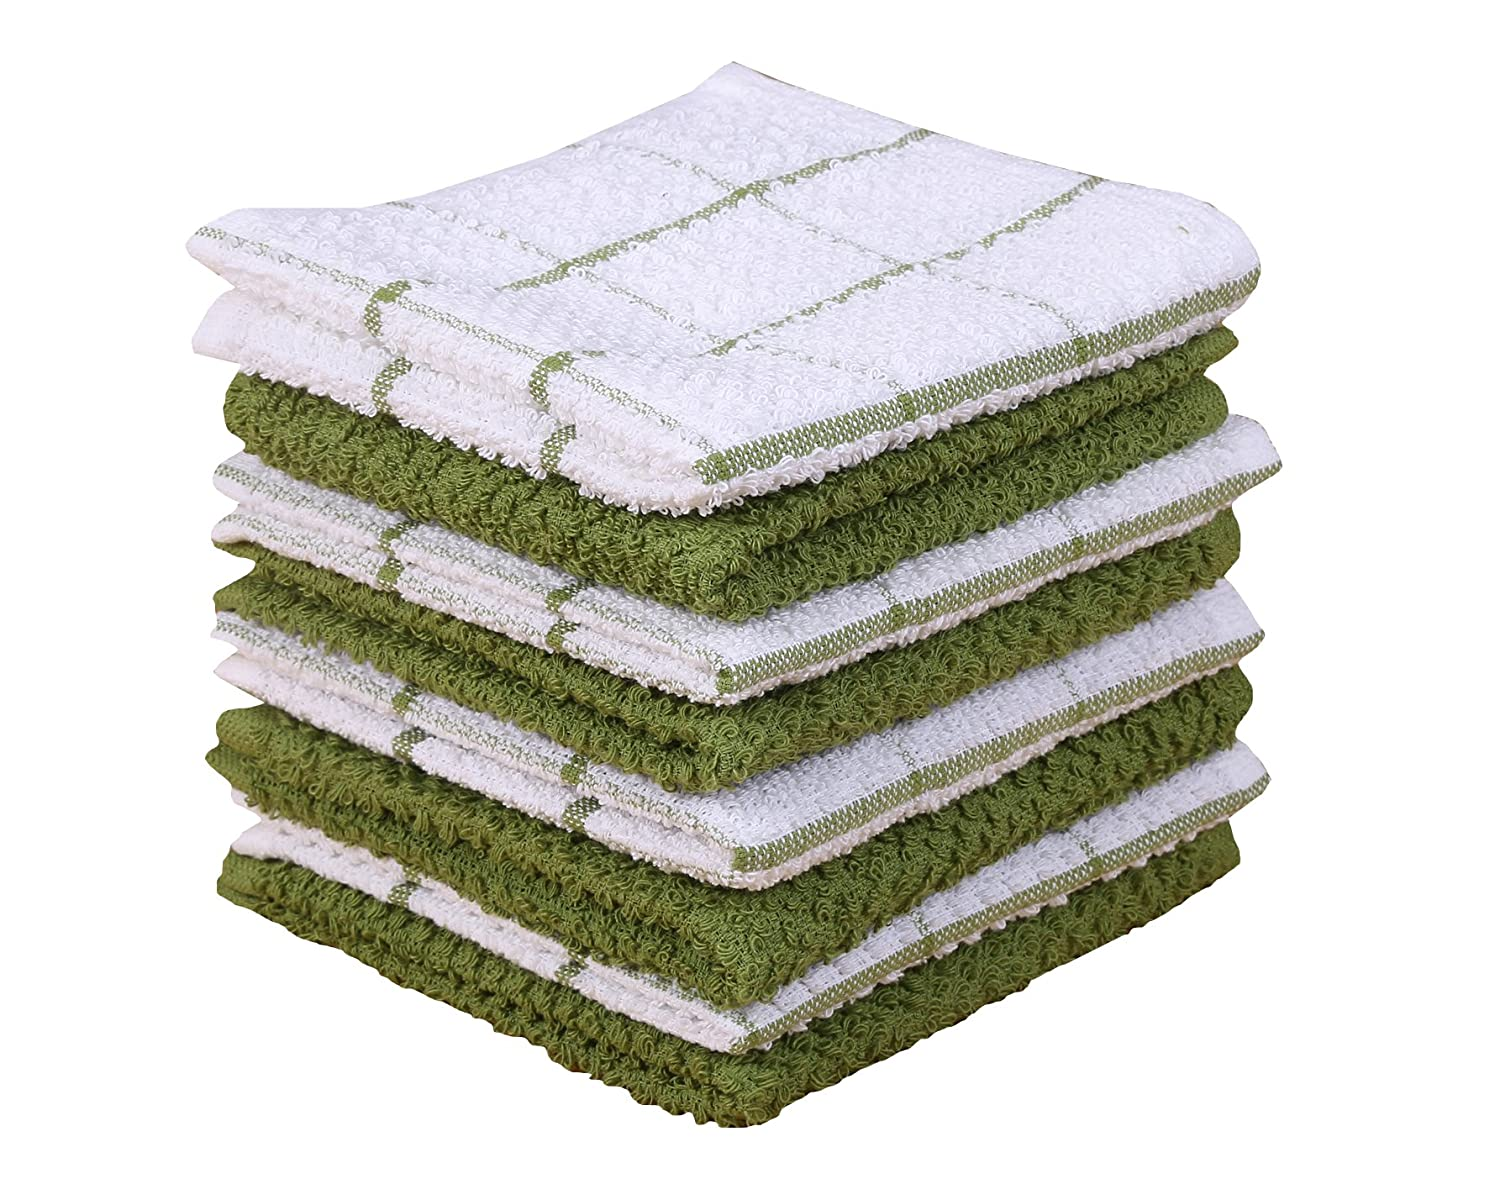 Terry Kitchen Dishcloth Set of 8 (12 x 12 Inches), Green, 100% Cotton, Highly Absorbent, Machine Washable By CASA DECORS